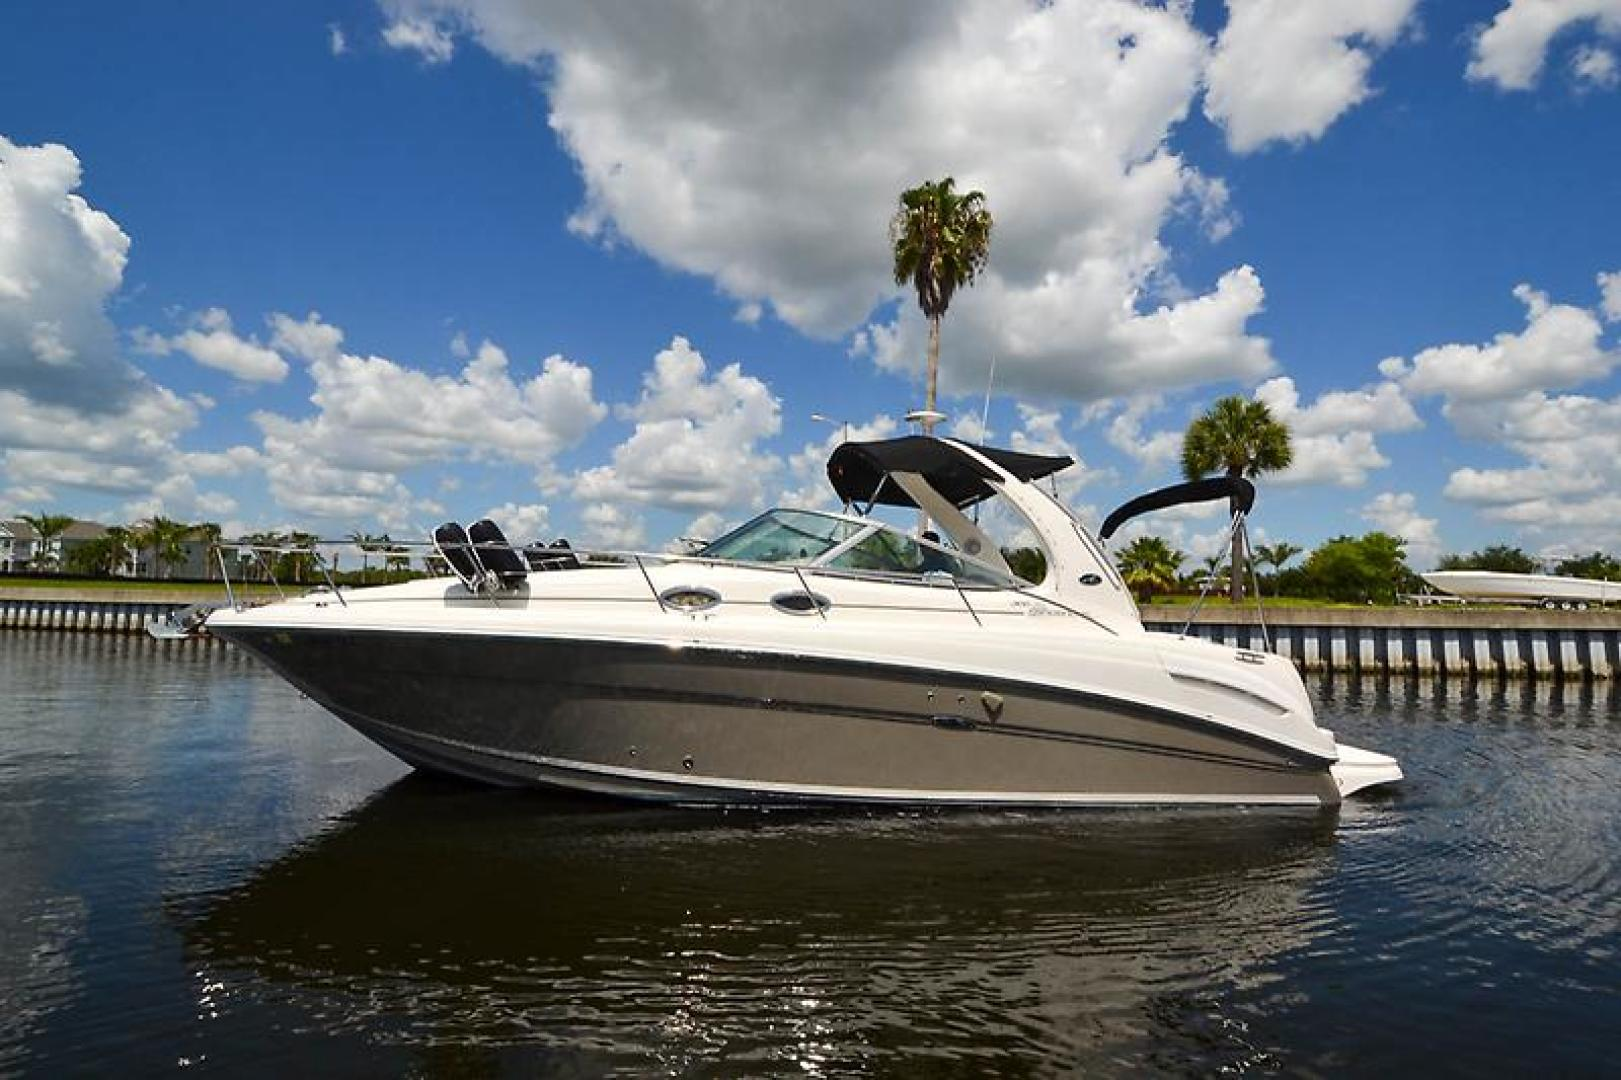 2006 Sea Ray 300 Sundancer-23-2.jpg